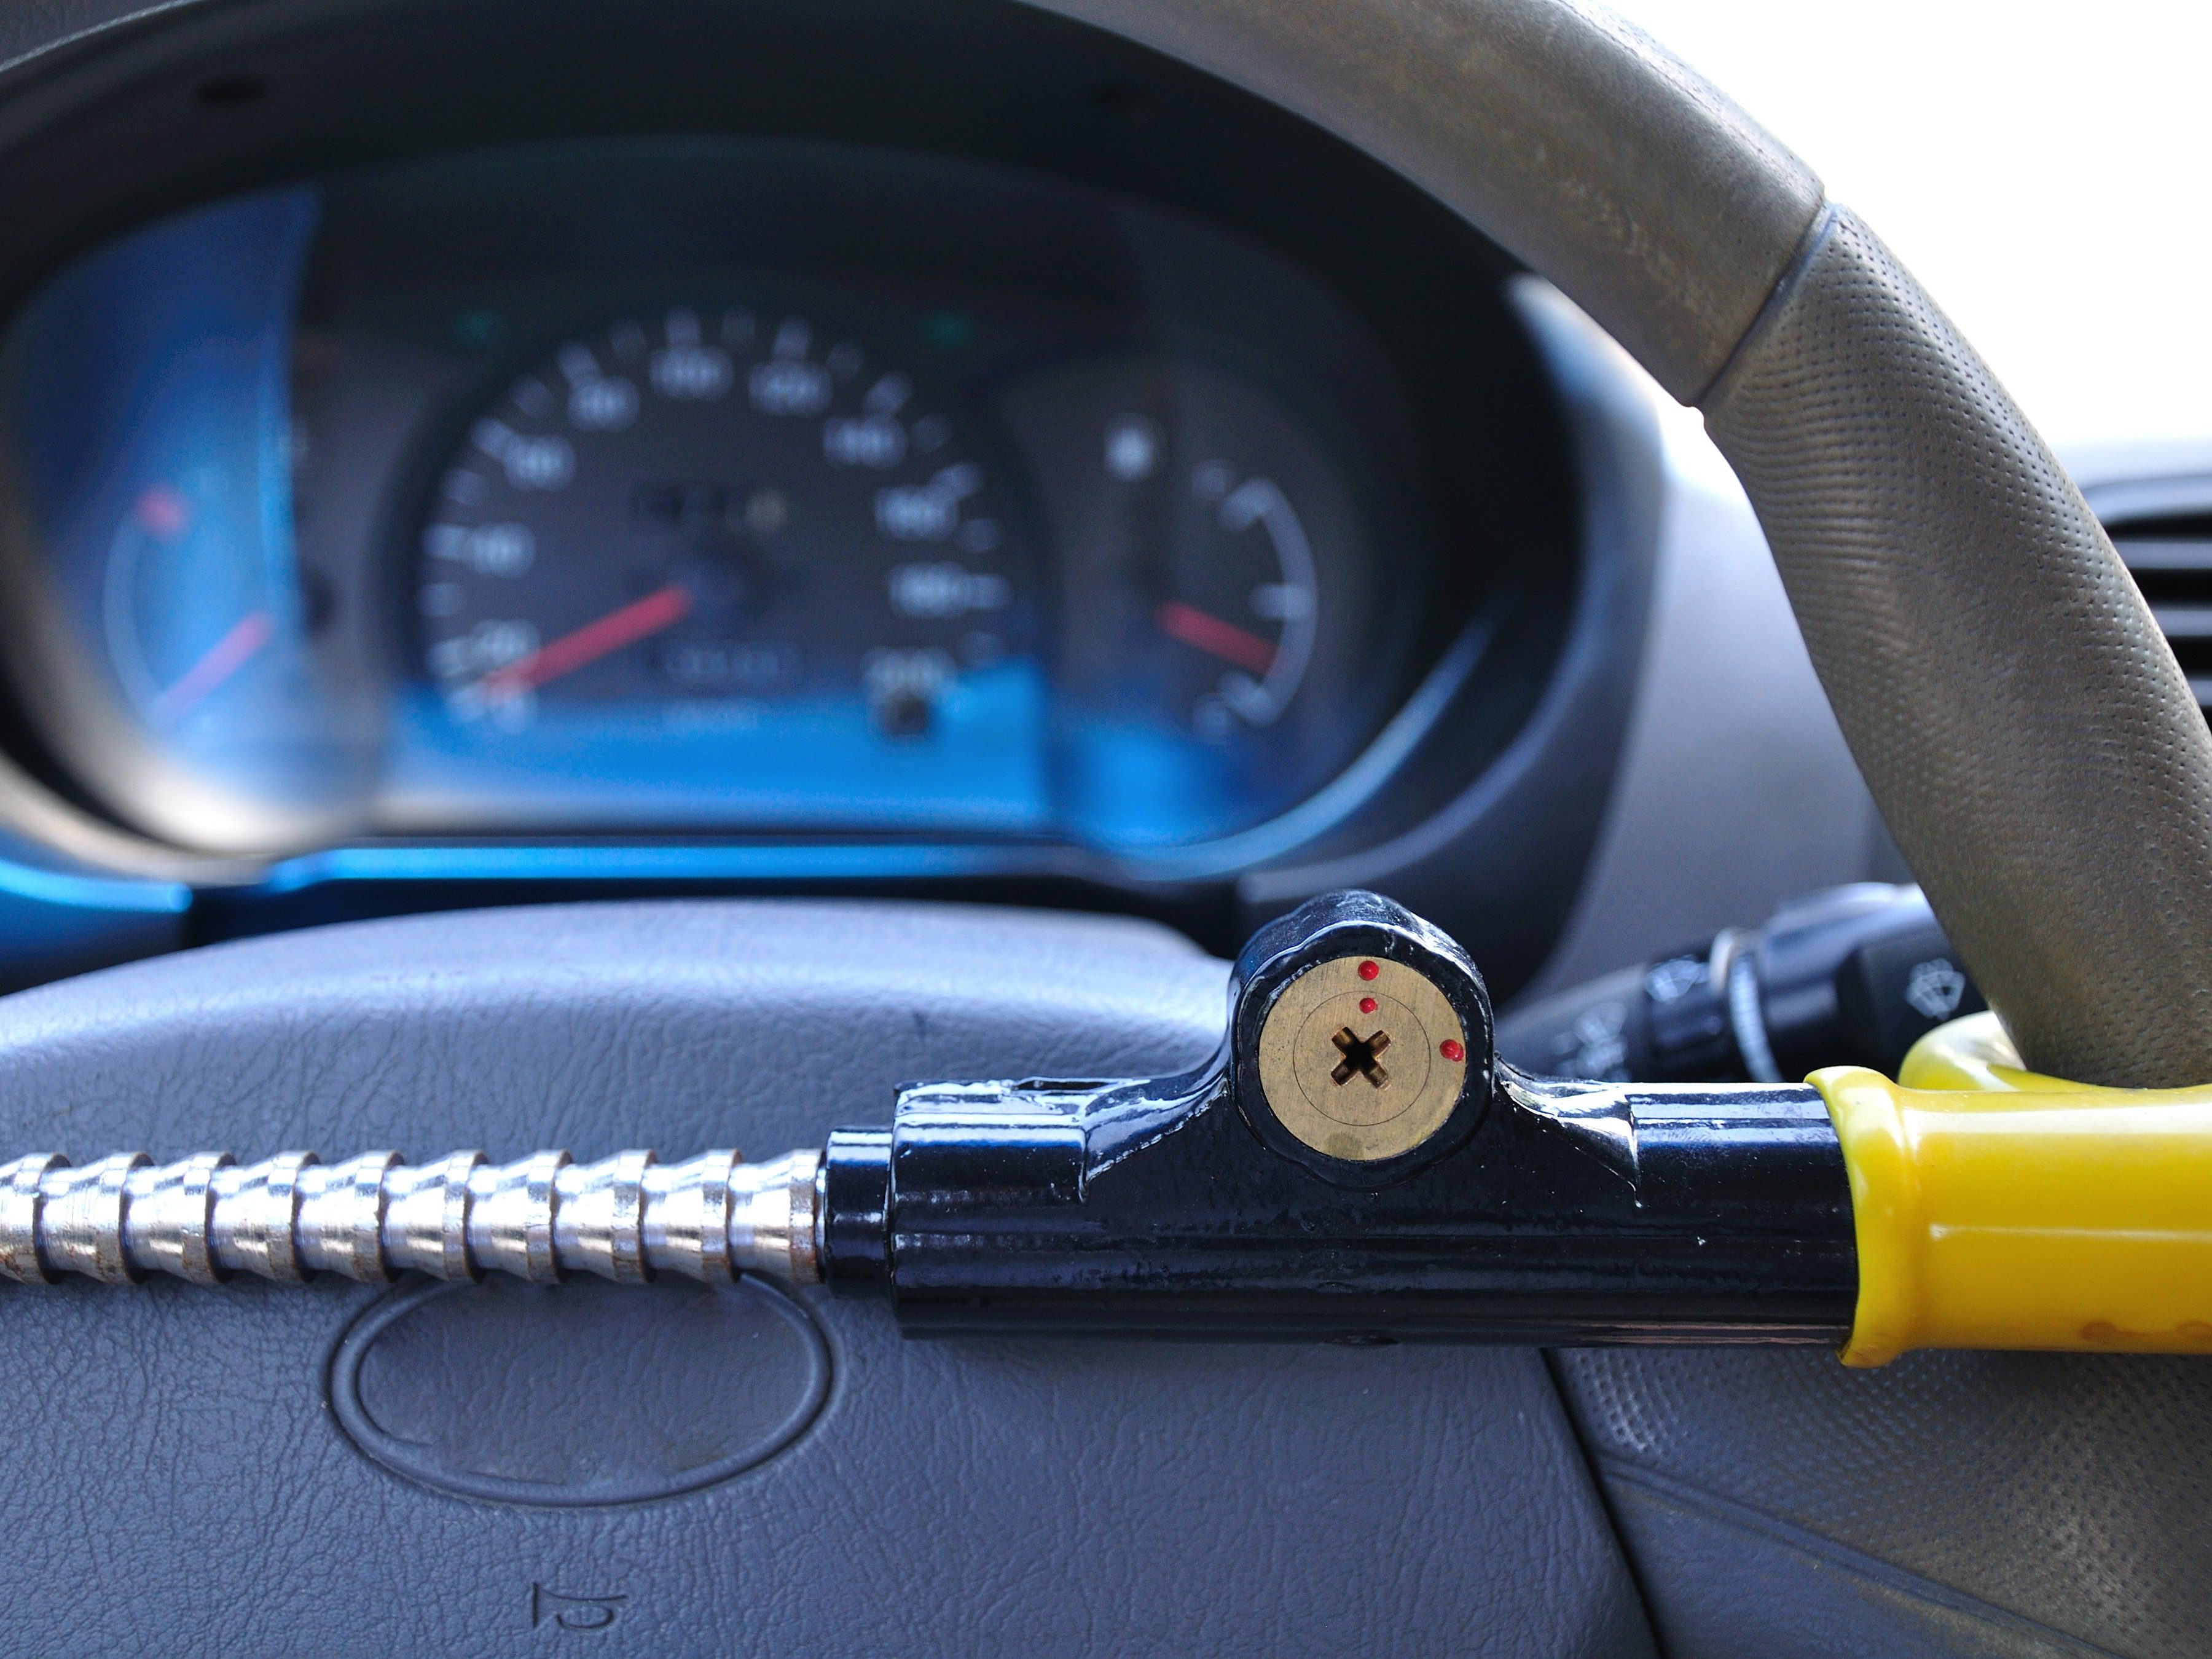 Car security strategy #3: Invest in a steering wheel lock